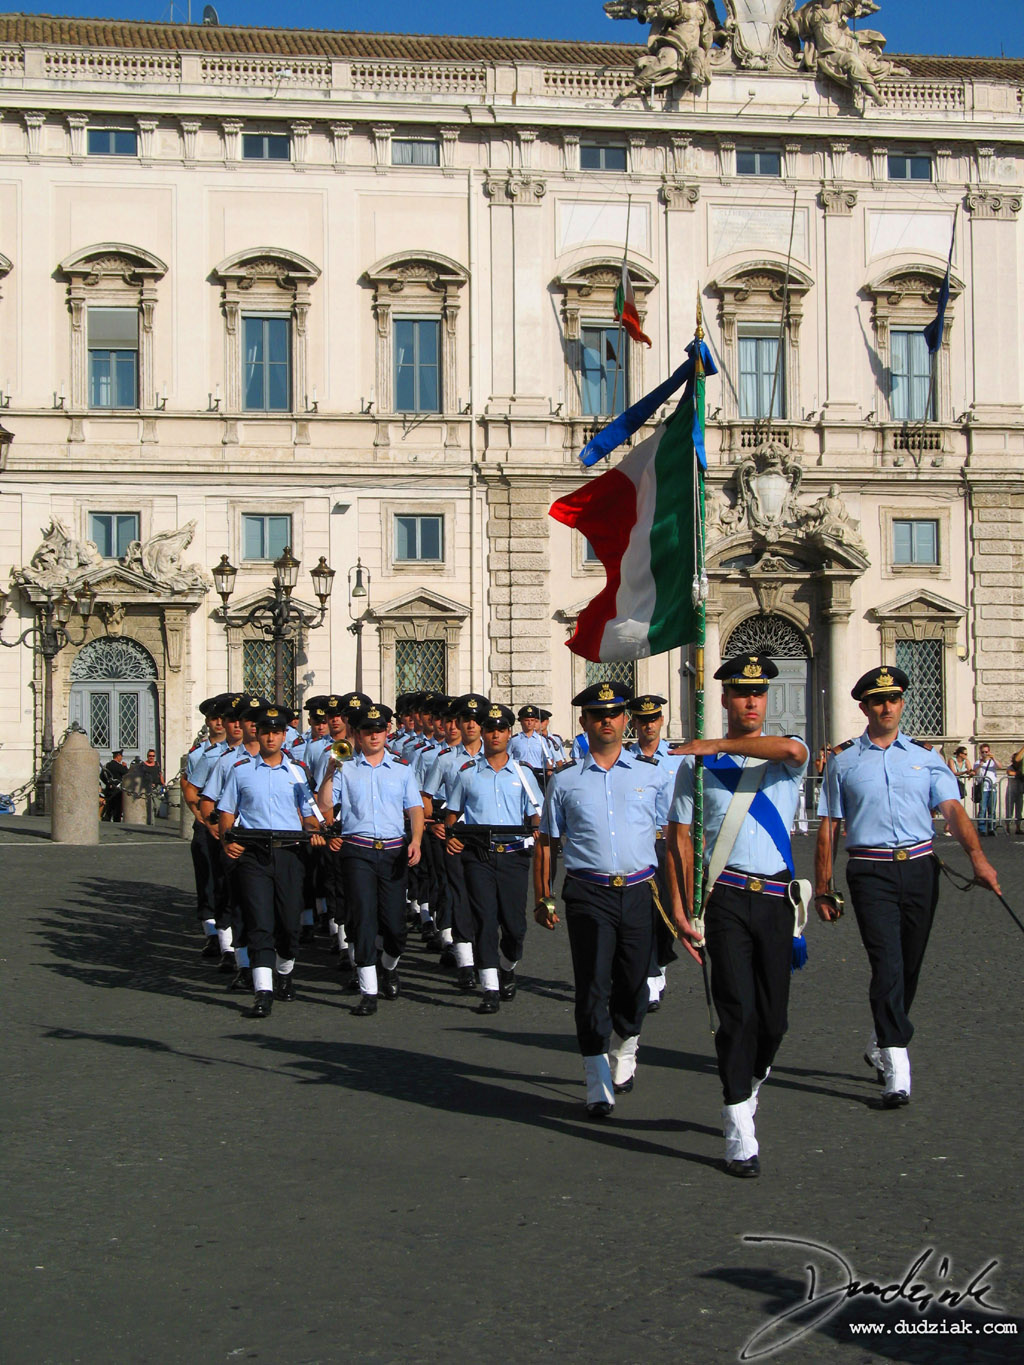 Roma,  changing of the guard,  Rome,  Italian Soldiers,  Palazzo Quirinale,  Italy,  soldiers